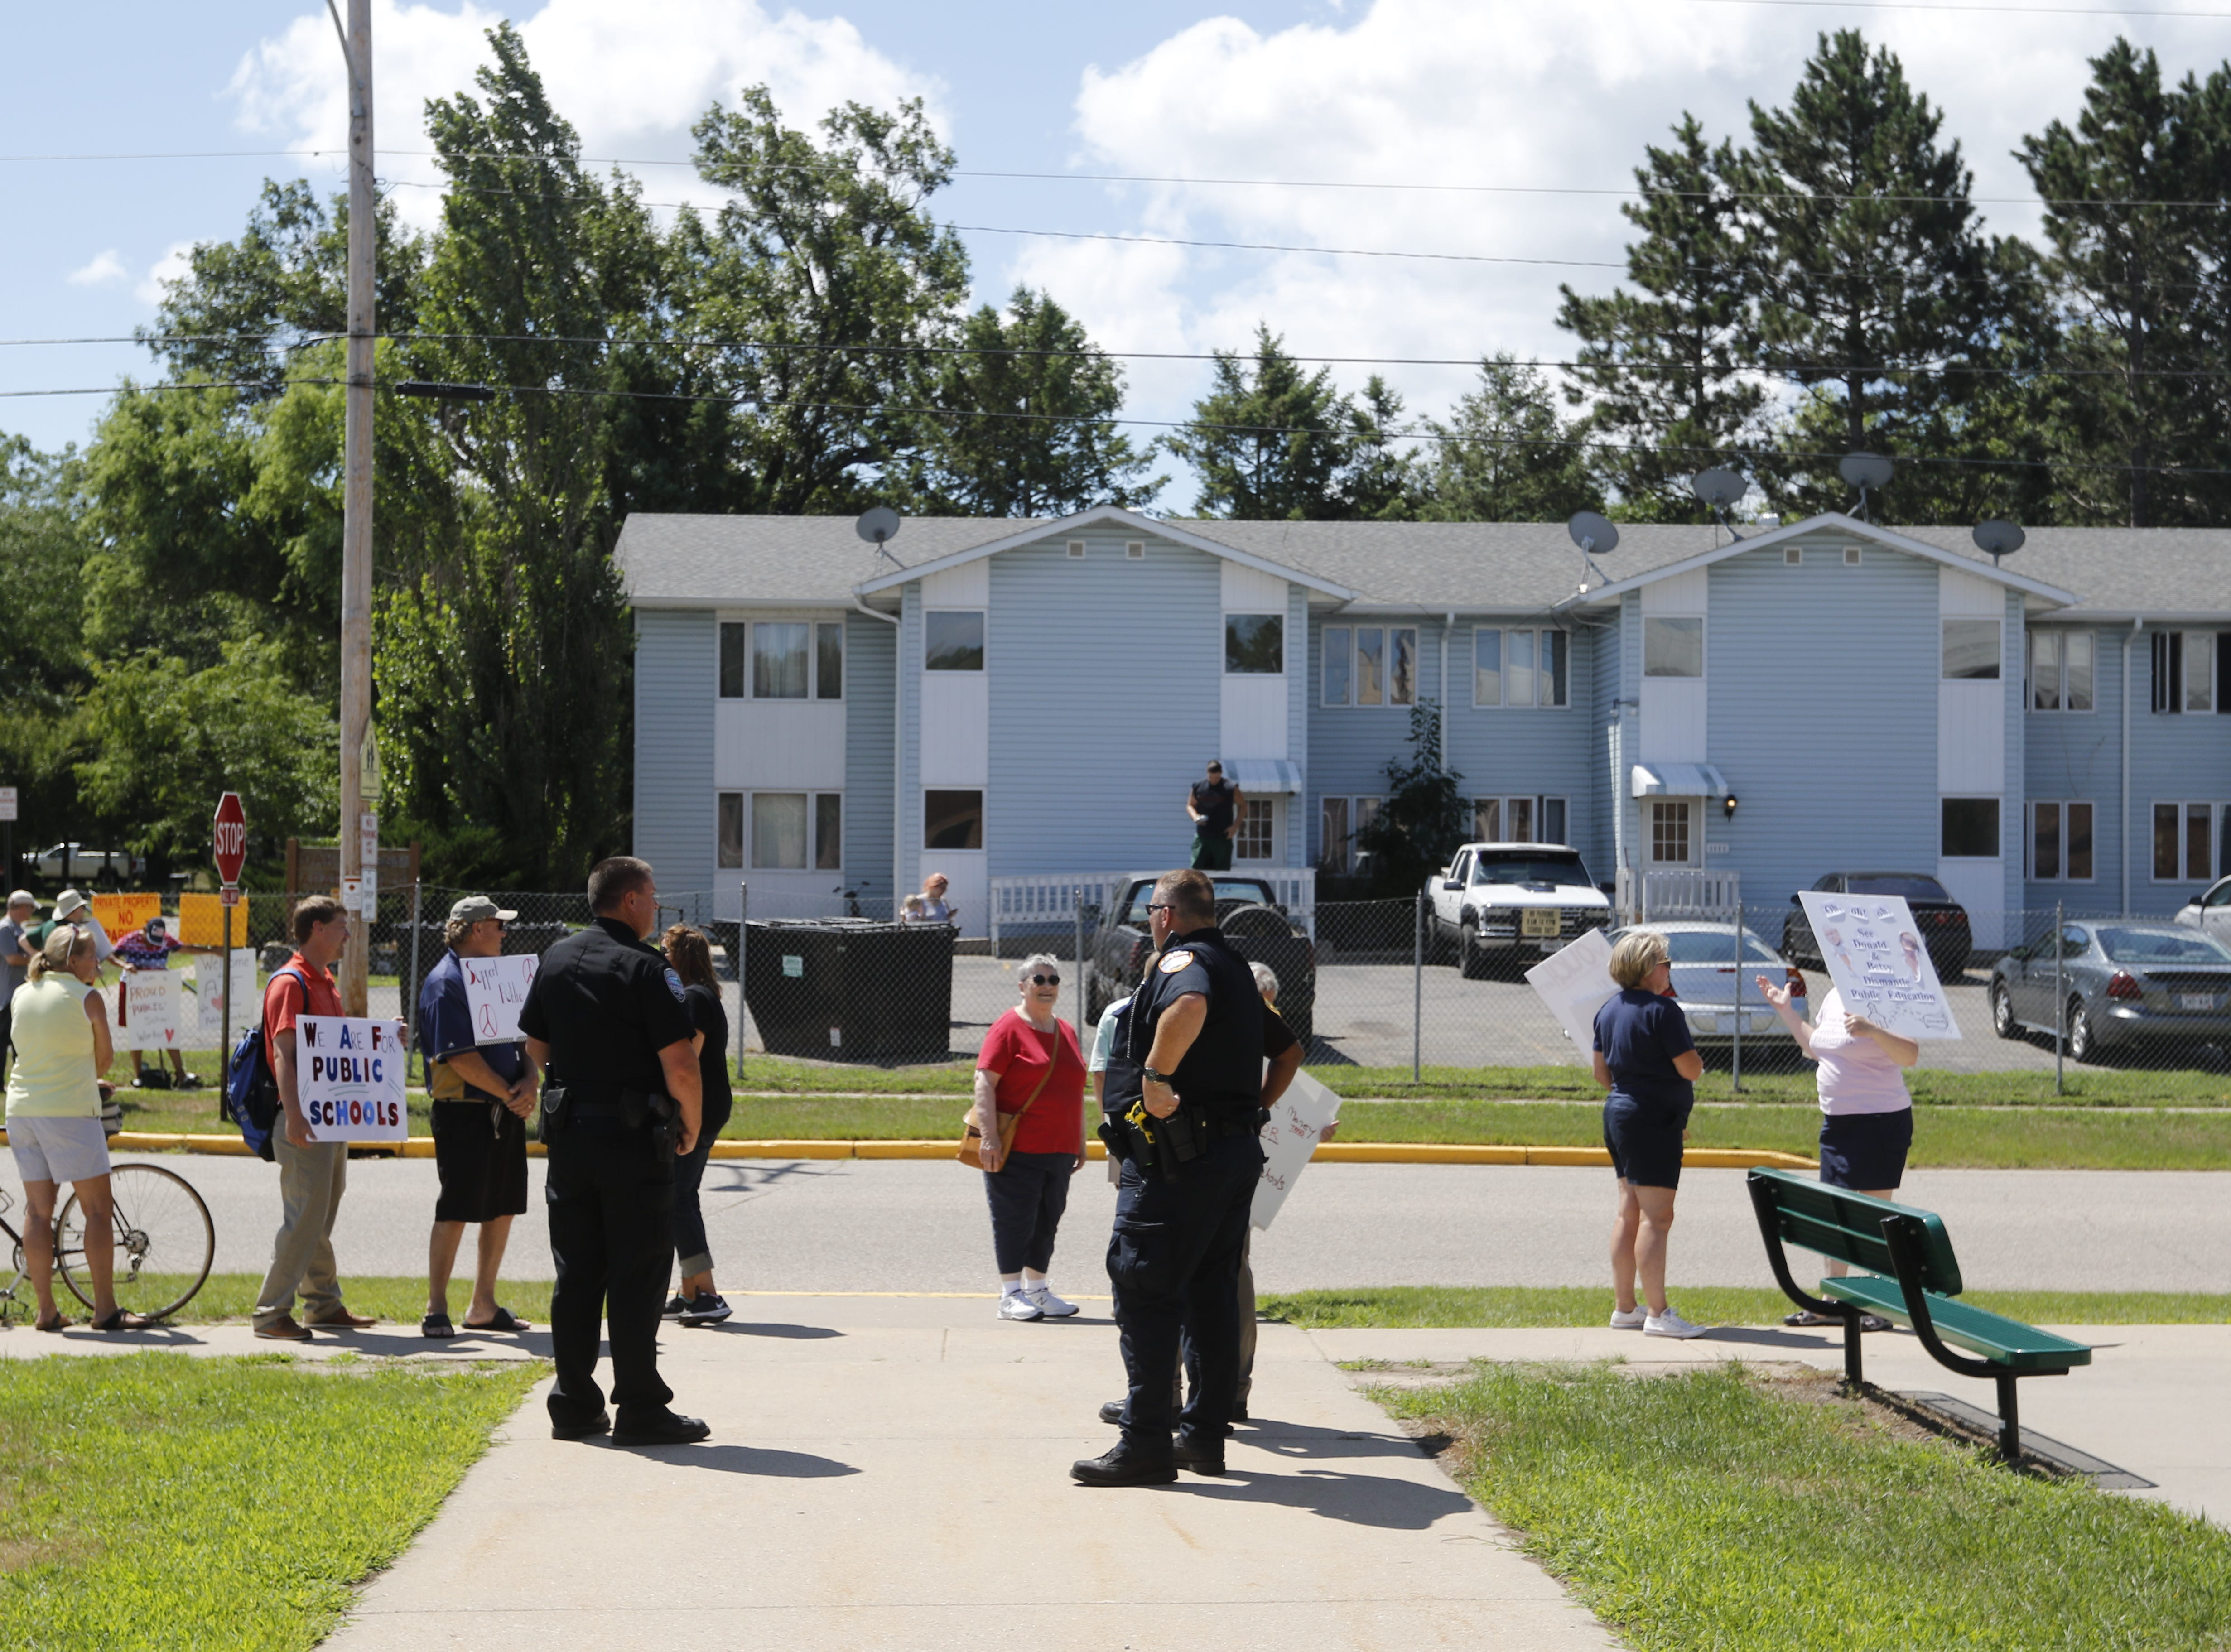 Protestors and police stand along East Brevoort Street in front of Adams-Friendship Middle School in Adams, Wis. as U.S. Secretary of Education Betsy DeVos appears at the school Tuesday, July 24, 2018.